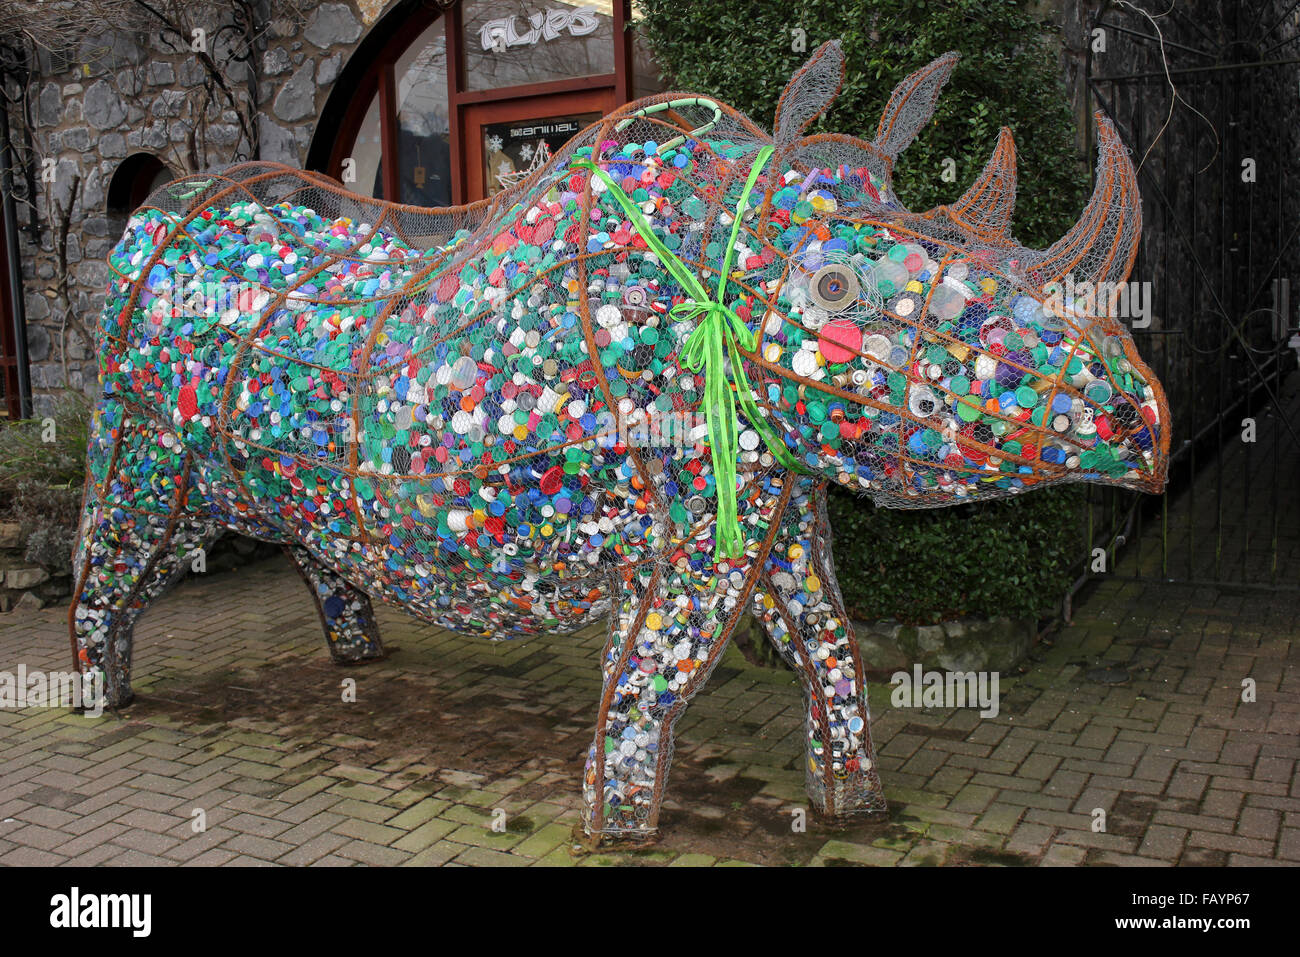 'Edith' A Metalwork Rhino filled with discarded Bottle-tops to Raise Awareness of Rhinoceros Poaching - Stock Image